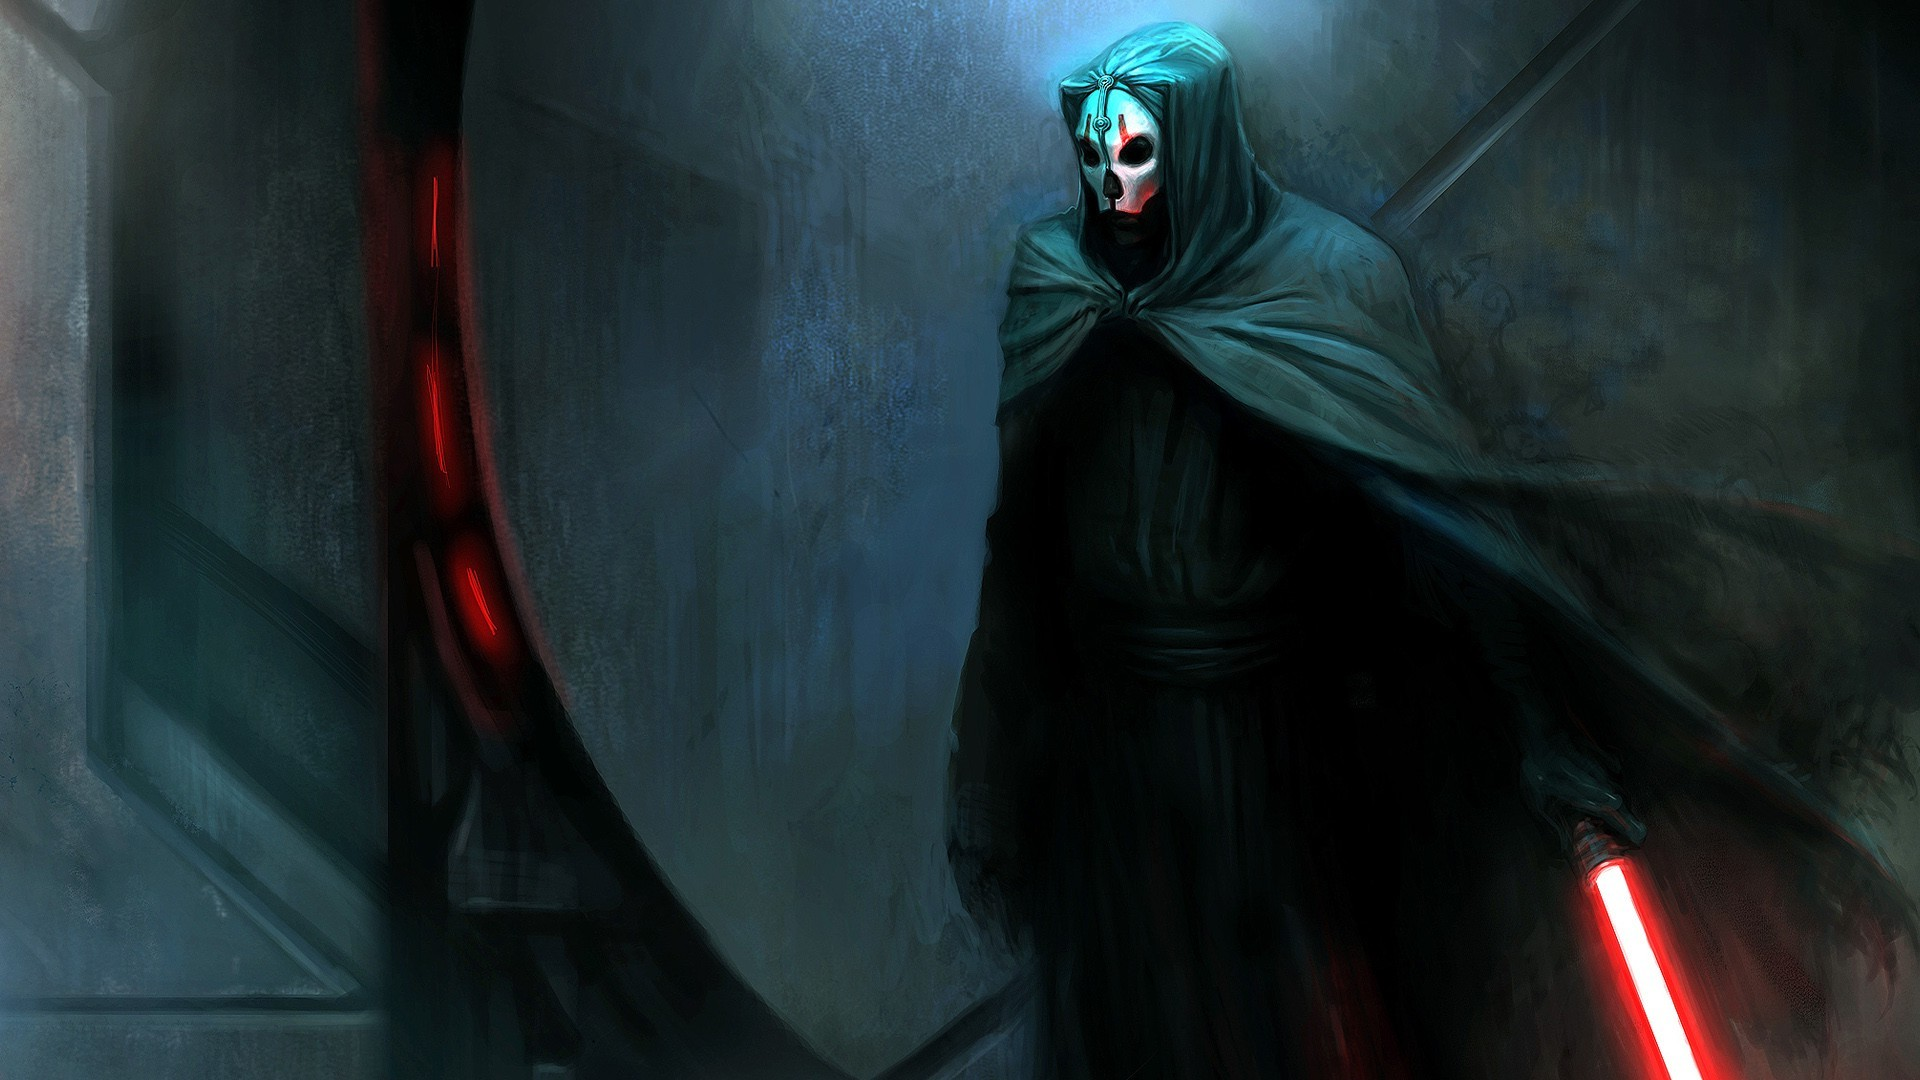 1920x1080 Star Wars Sith 1600×900 Wallpapers Background